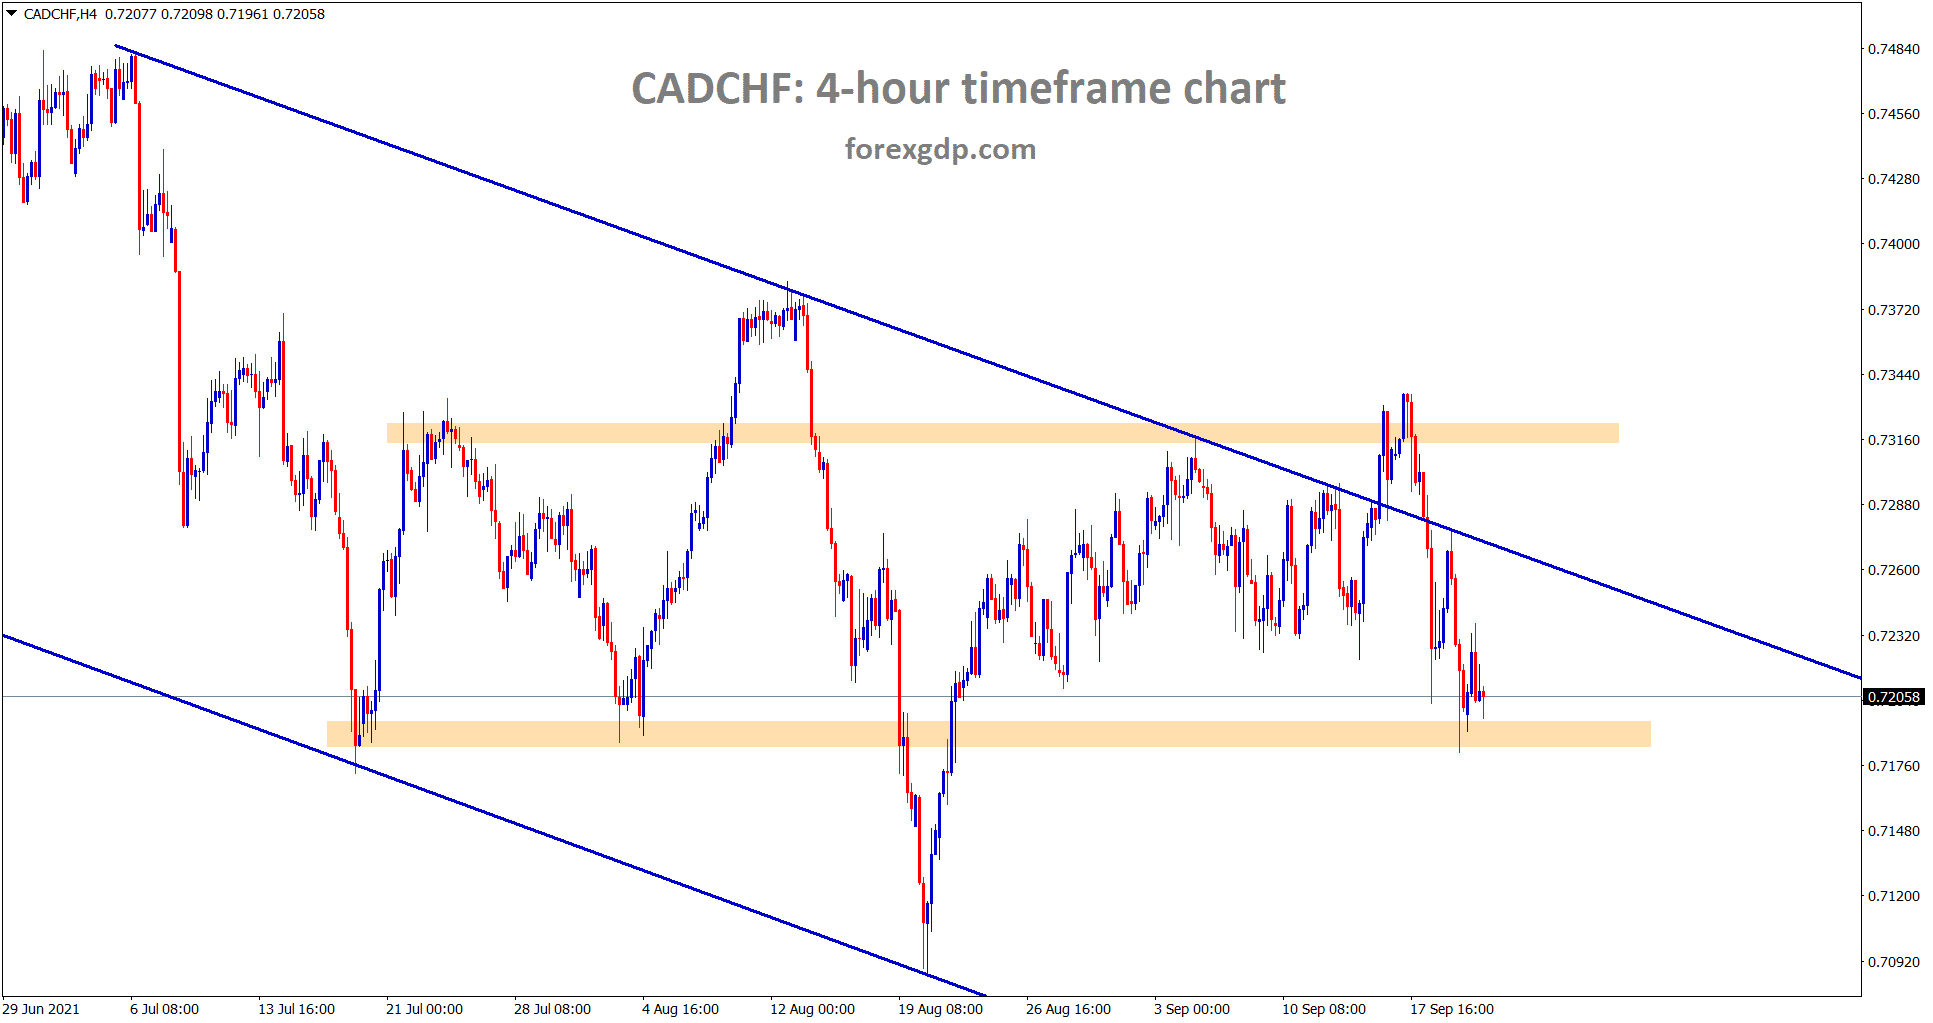 CADCHF is at the horizontal support area in a downtrend line